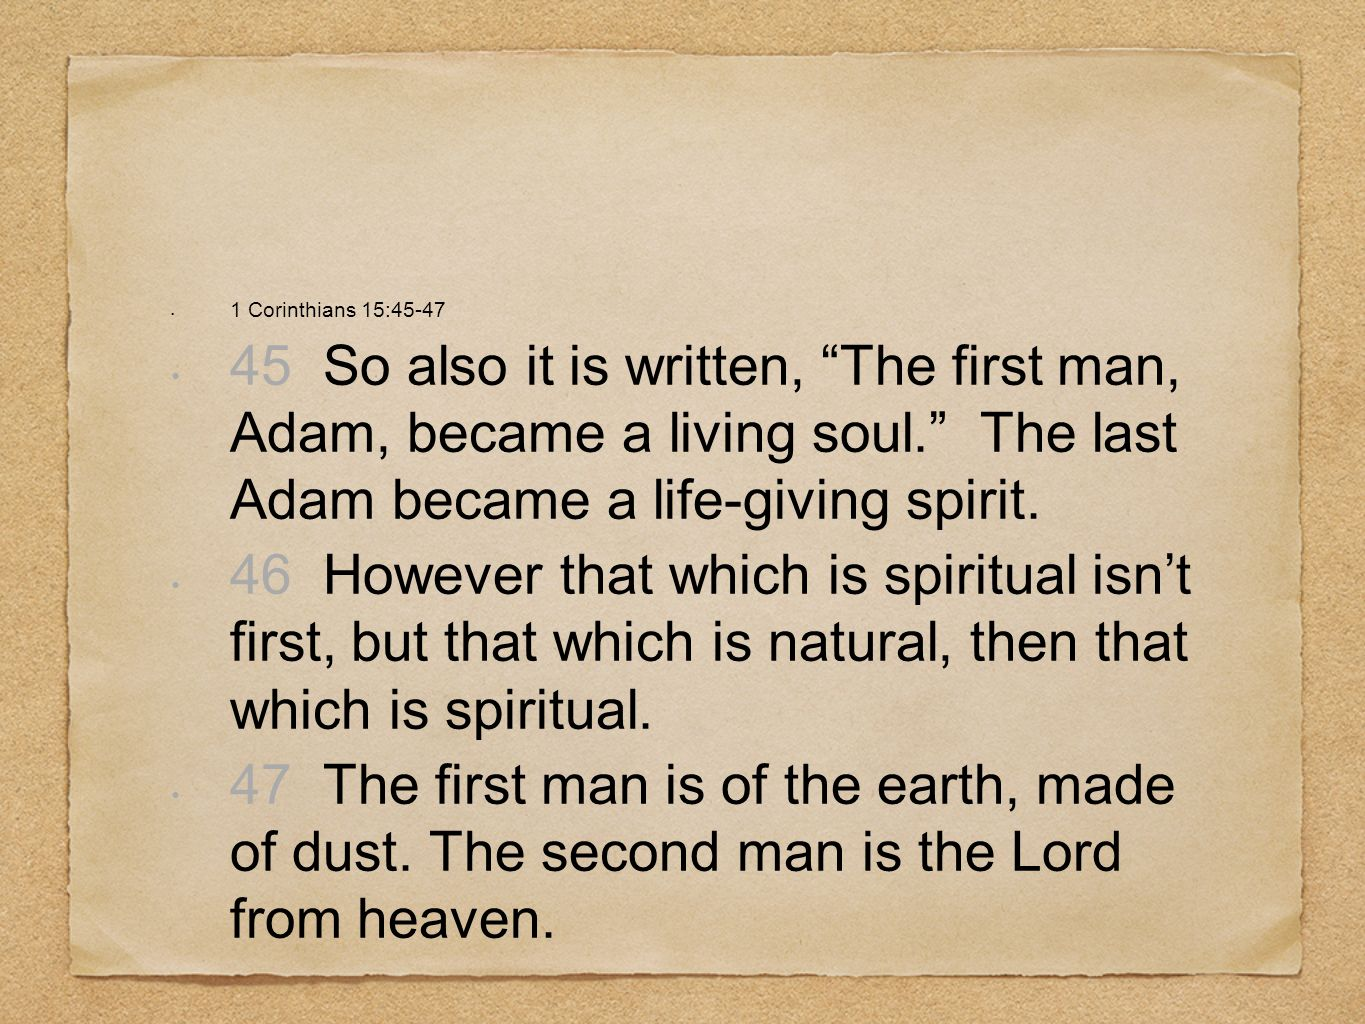 1 Corinthians 15: So also it is written, The first man, Adam, became a living soul. The last Adam became a life-giving spirit.